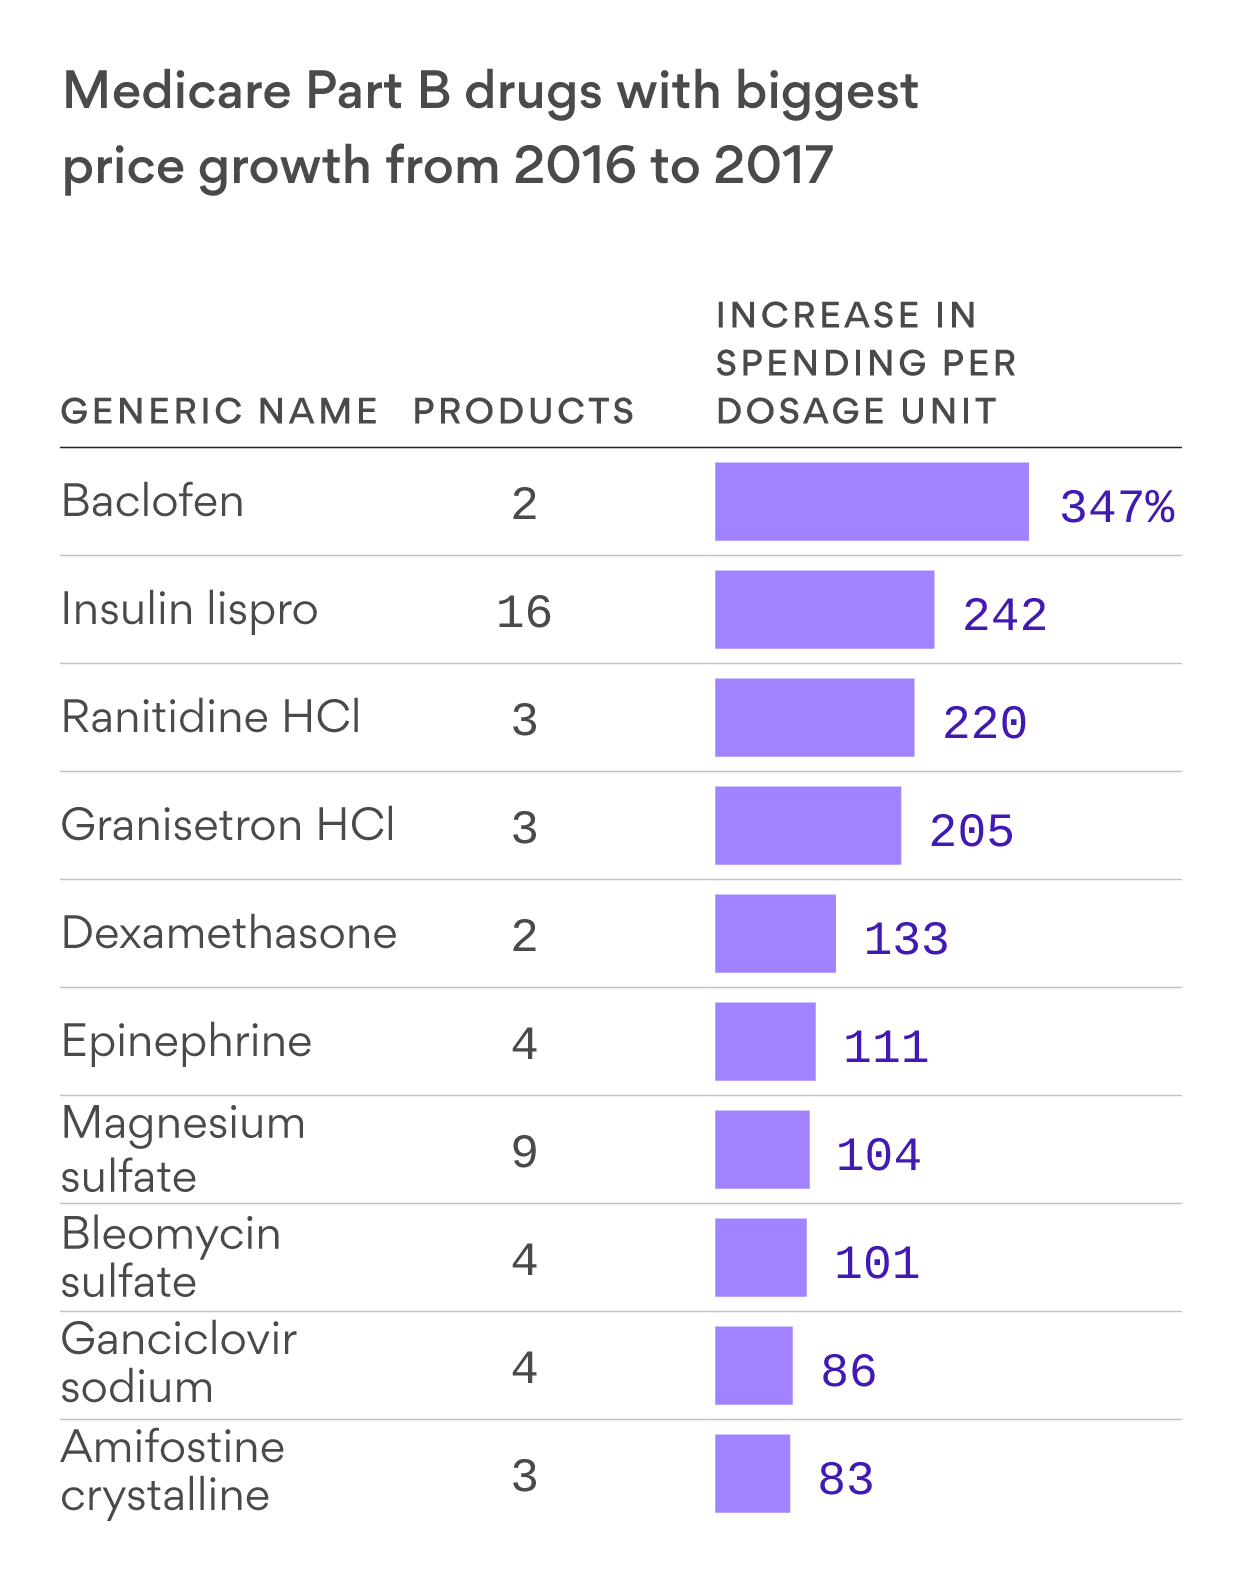 Competition doesn't always drive down drug prices